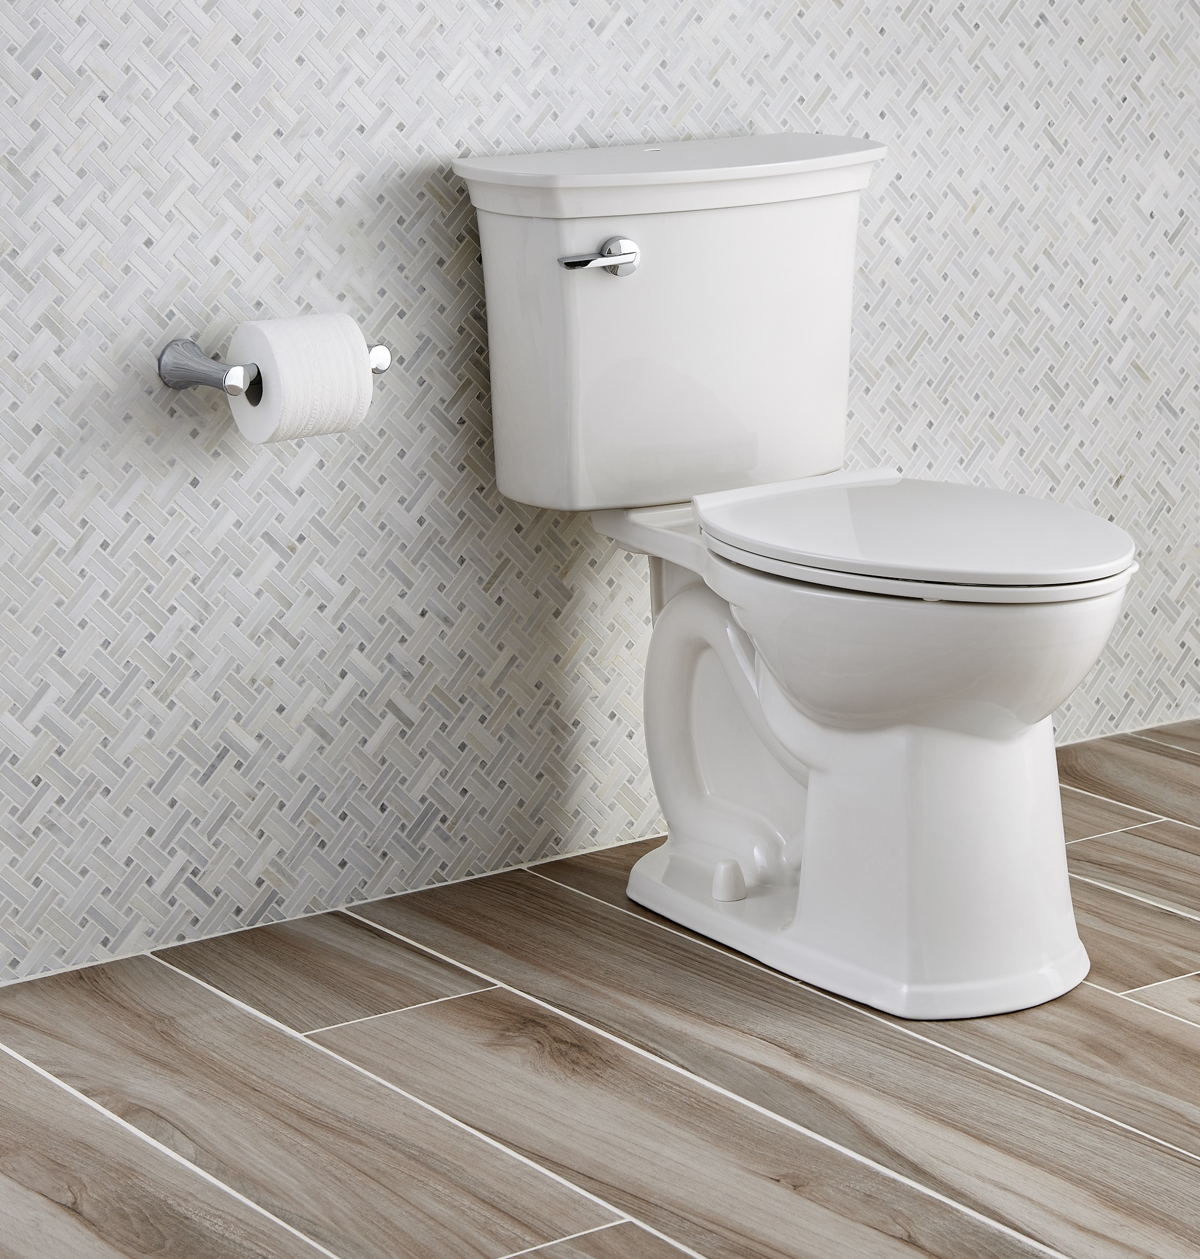 American Standard ActiClean toilet. Image courtesy of American Standard.